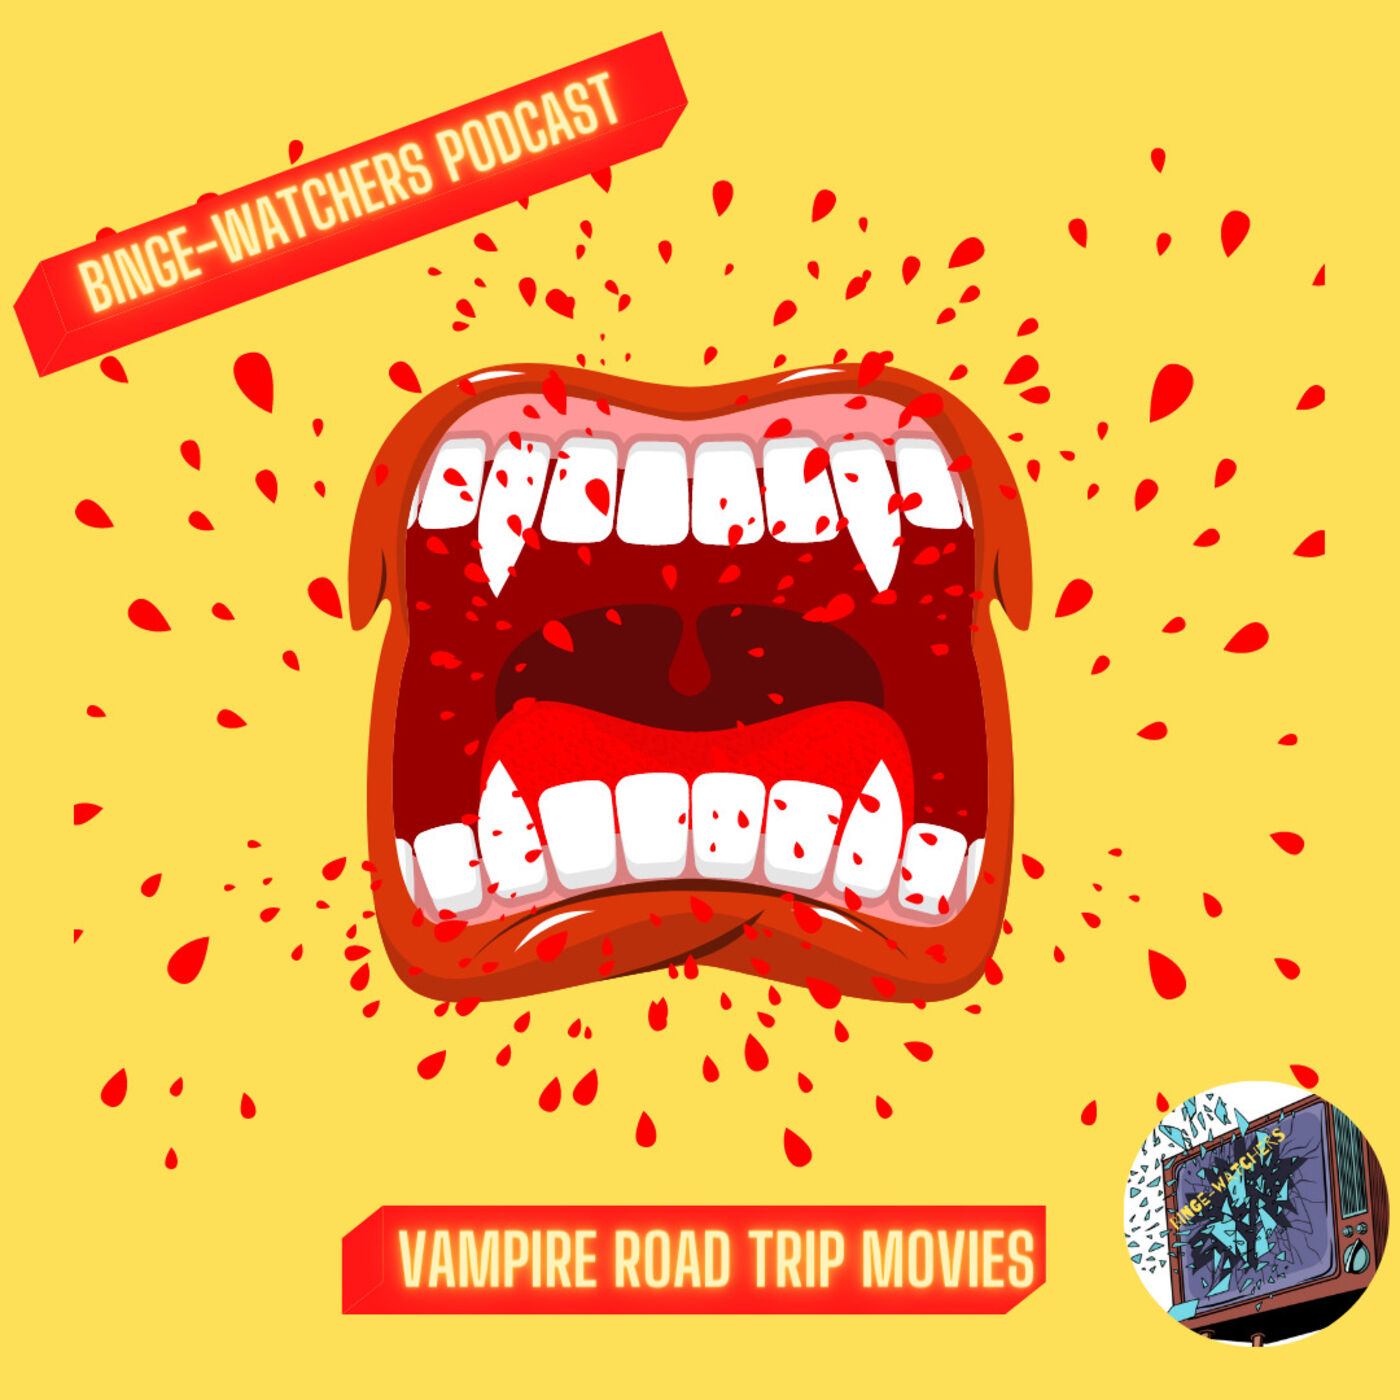 HORROR MOVIES TO WATCH: VAMPIRE ROAD TRIP MOVIES